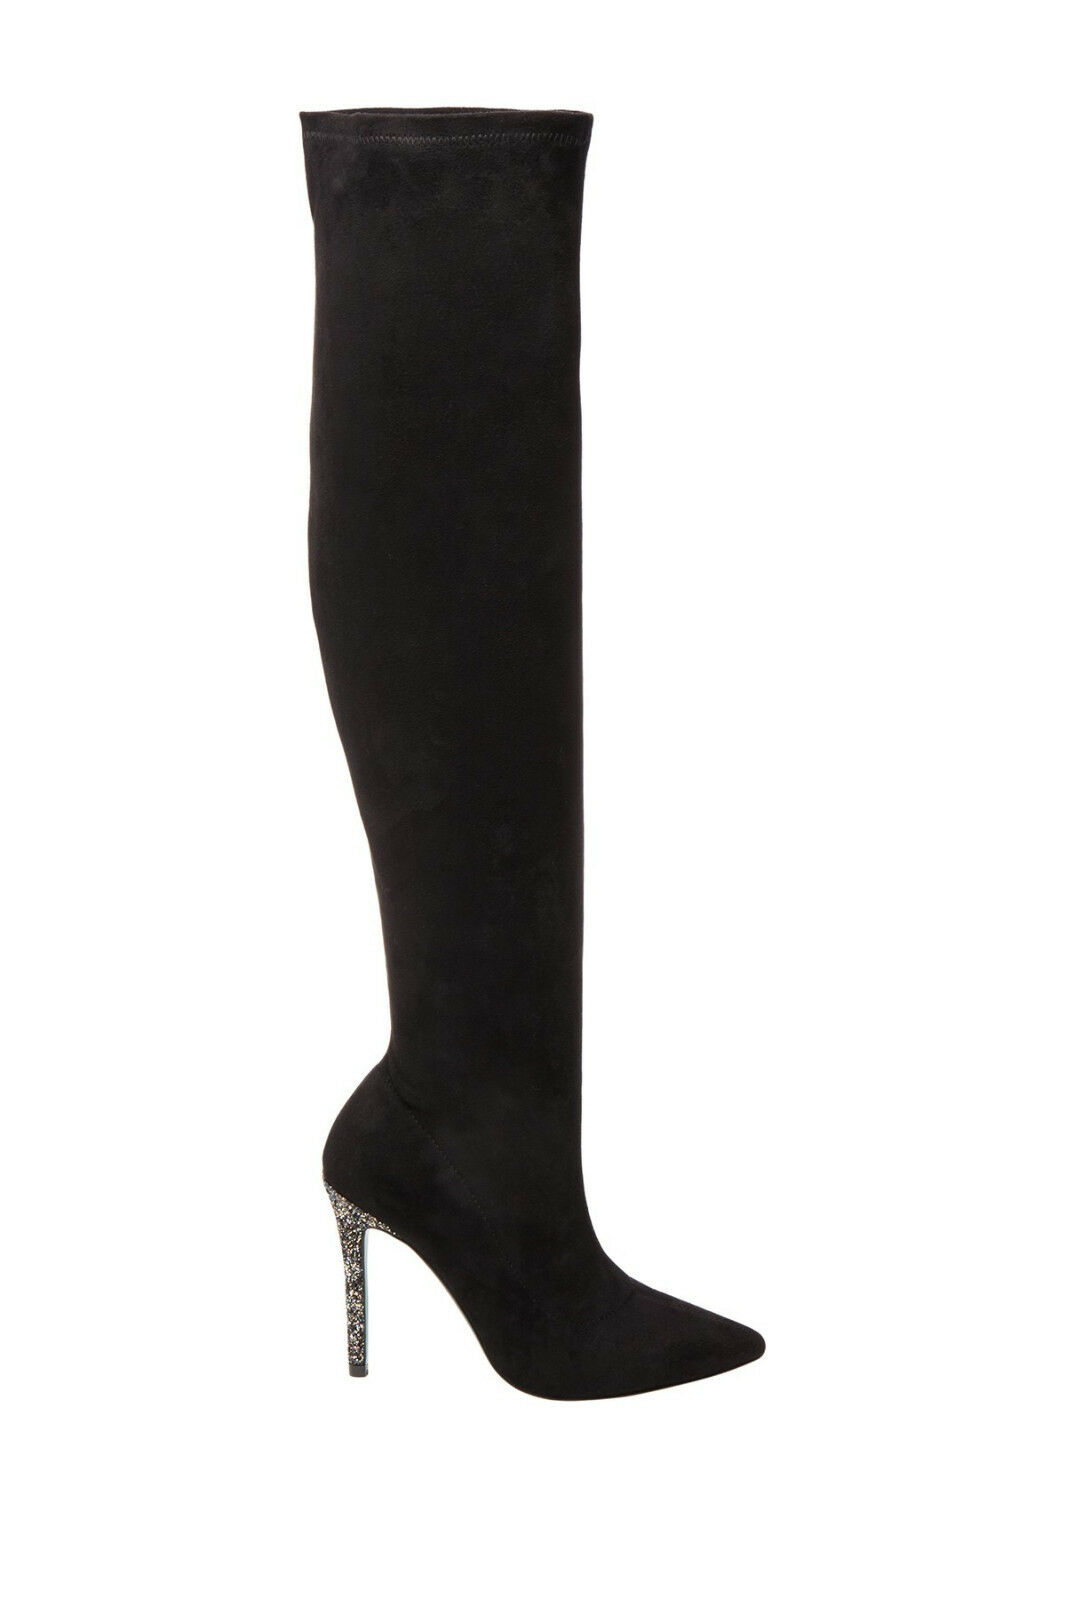 NEW BETSEY THE JOHNSON BLACK ZURI OVER THE BETSEY KNEE BOOTS SHOES SZ 6.5 4b4536